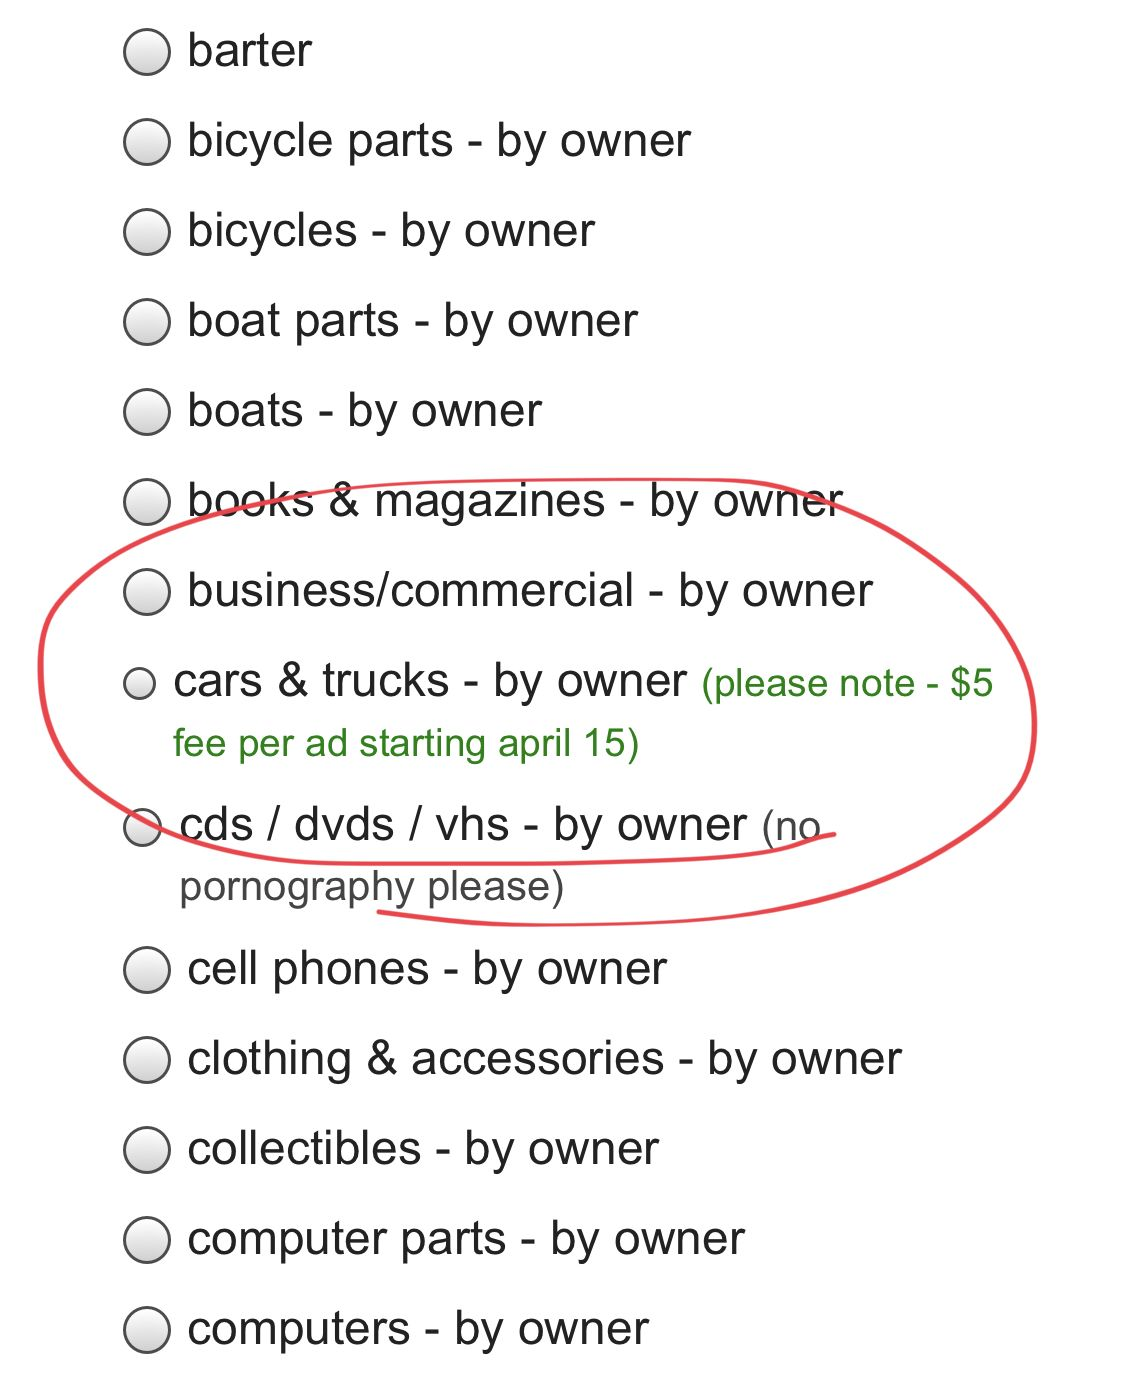 Craigslist Will Start Charging 5 To List Your Car